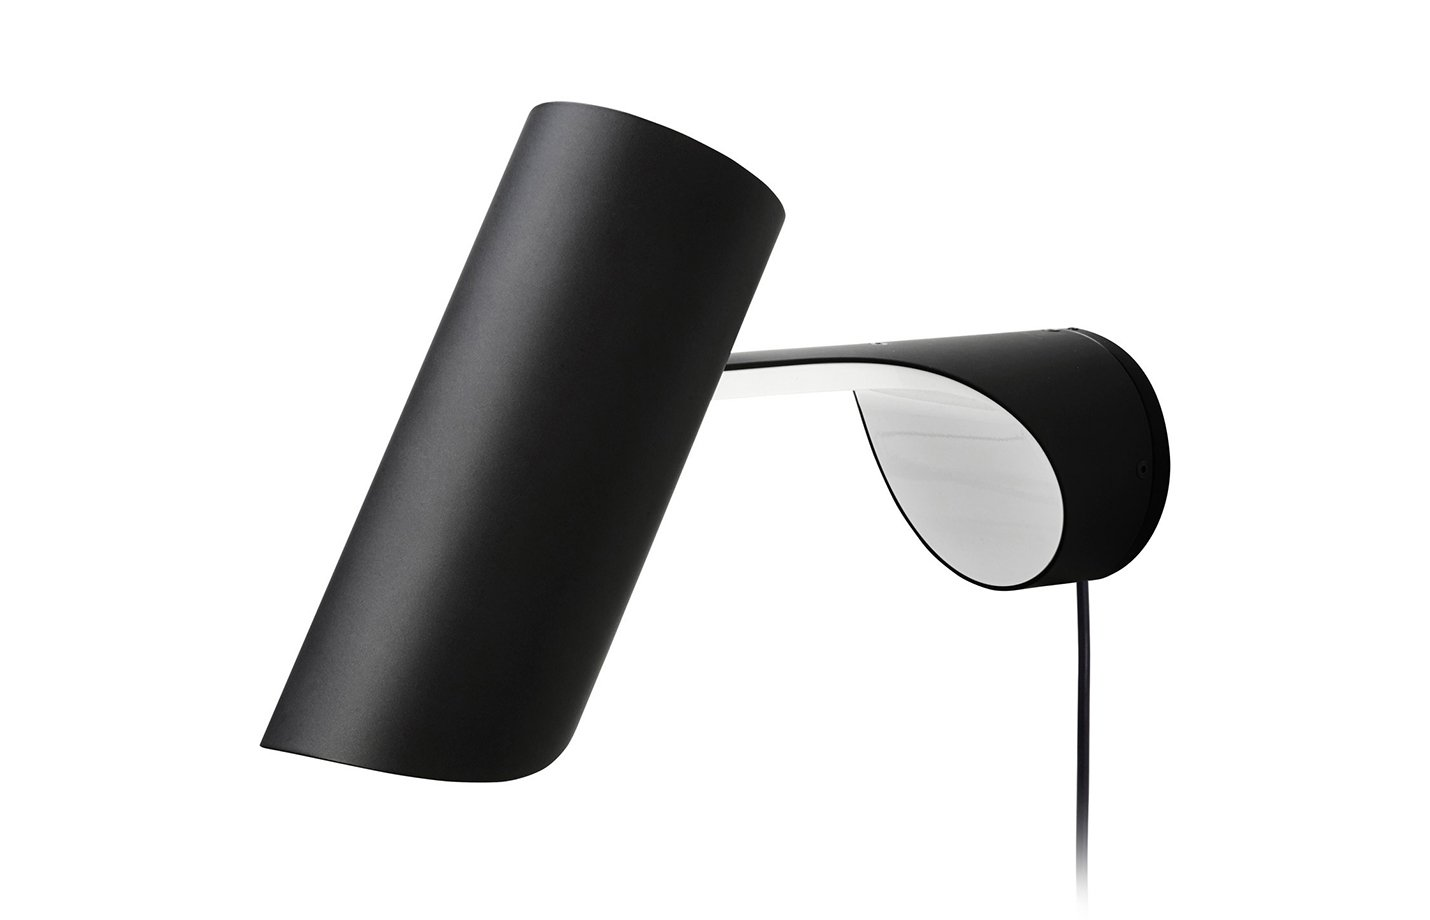 Wall Lamps Uae : Mutatio Wall Lamp Fabiia - Dubai, UAE